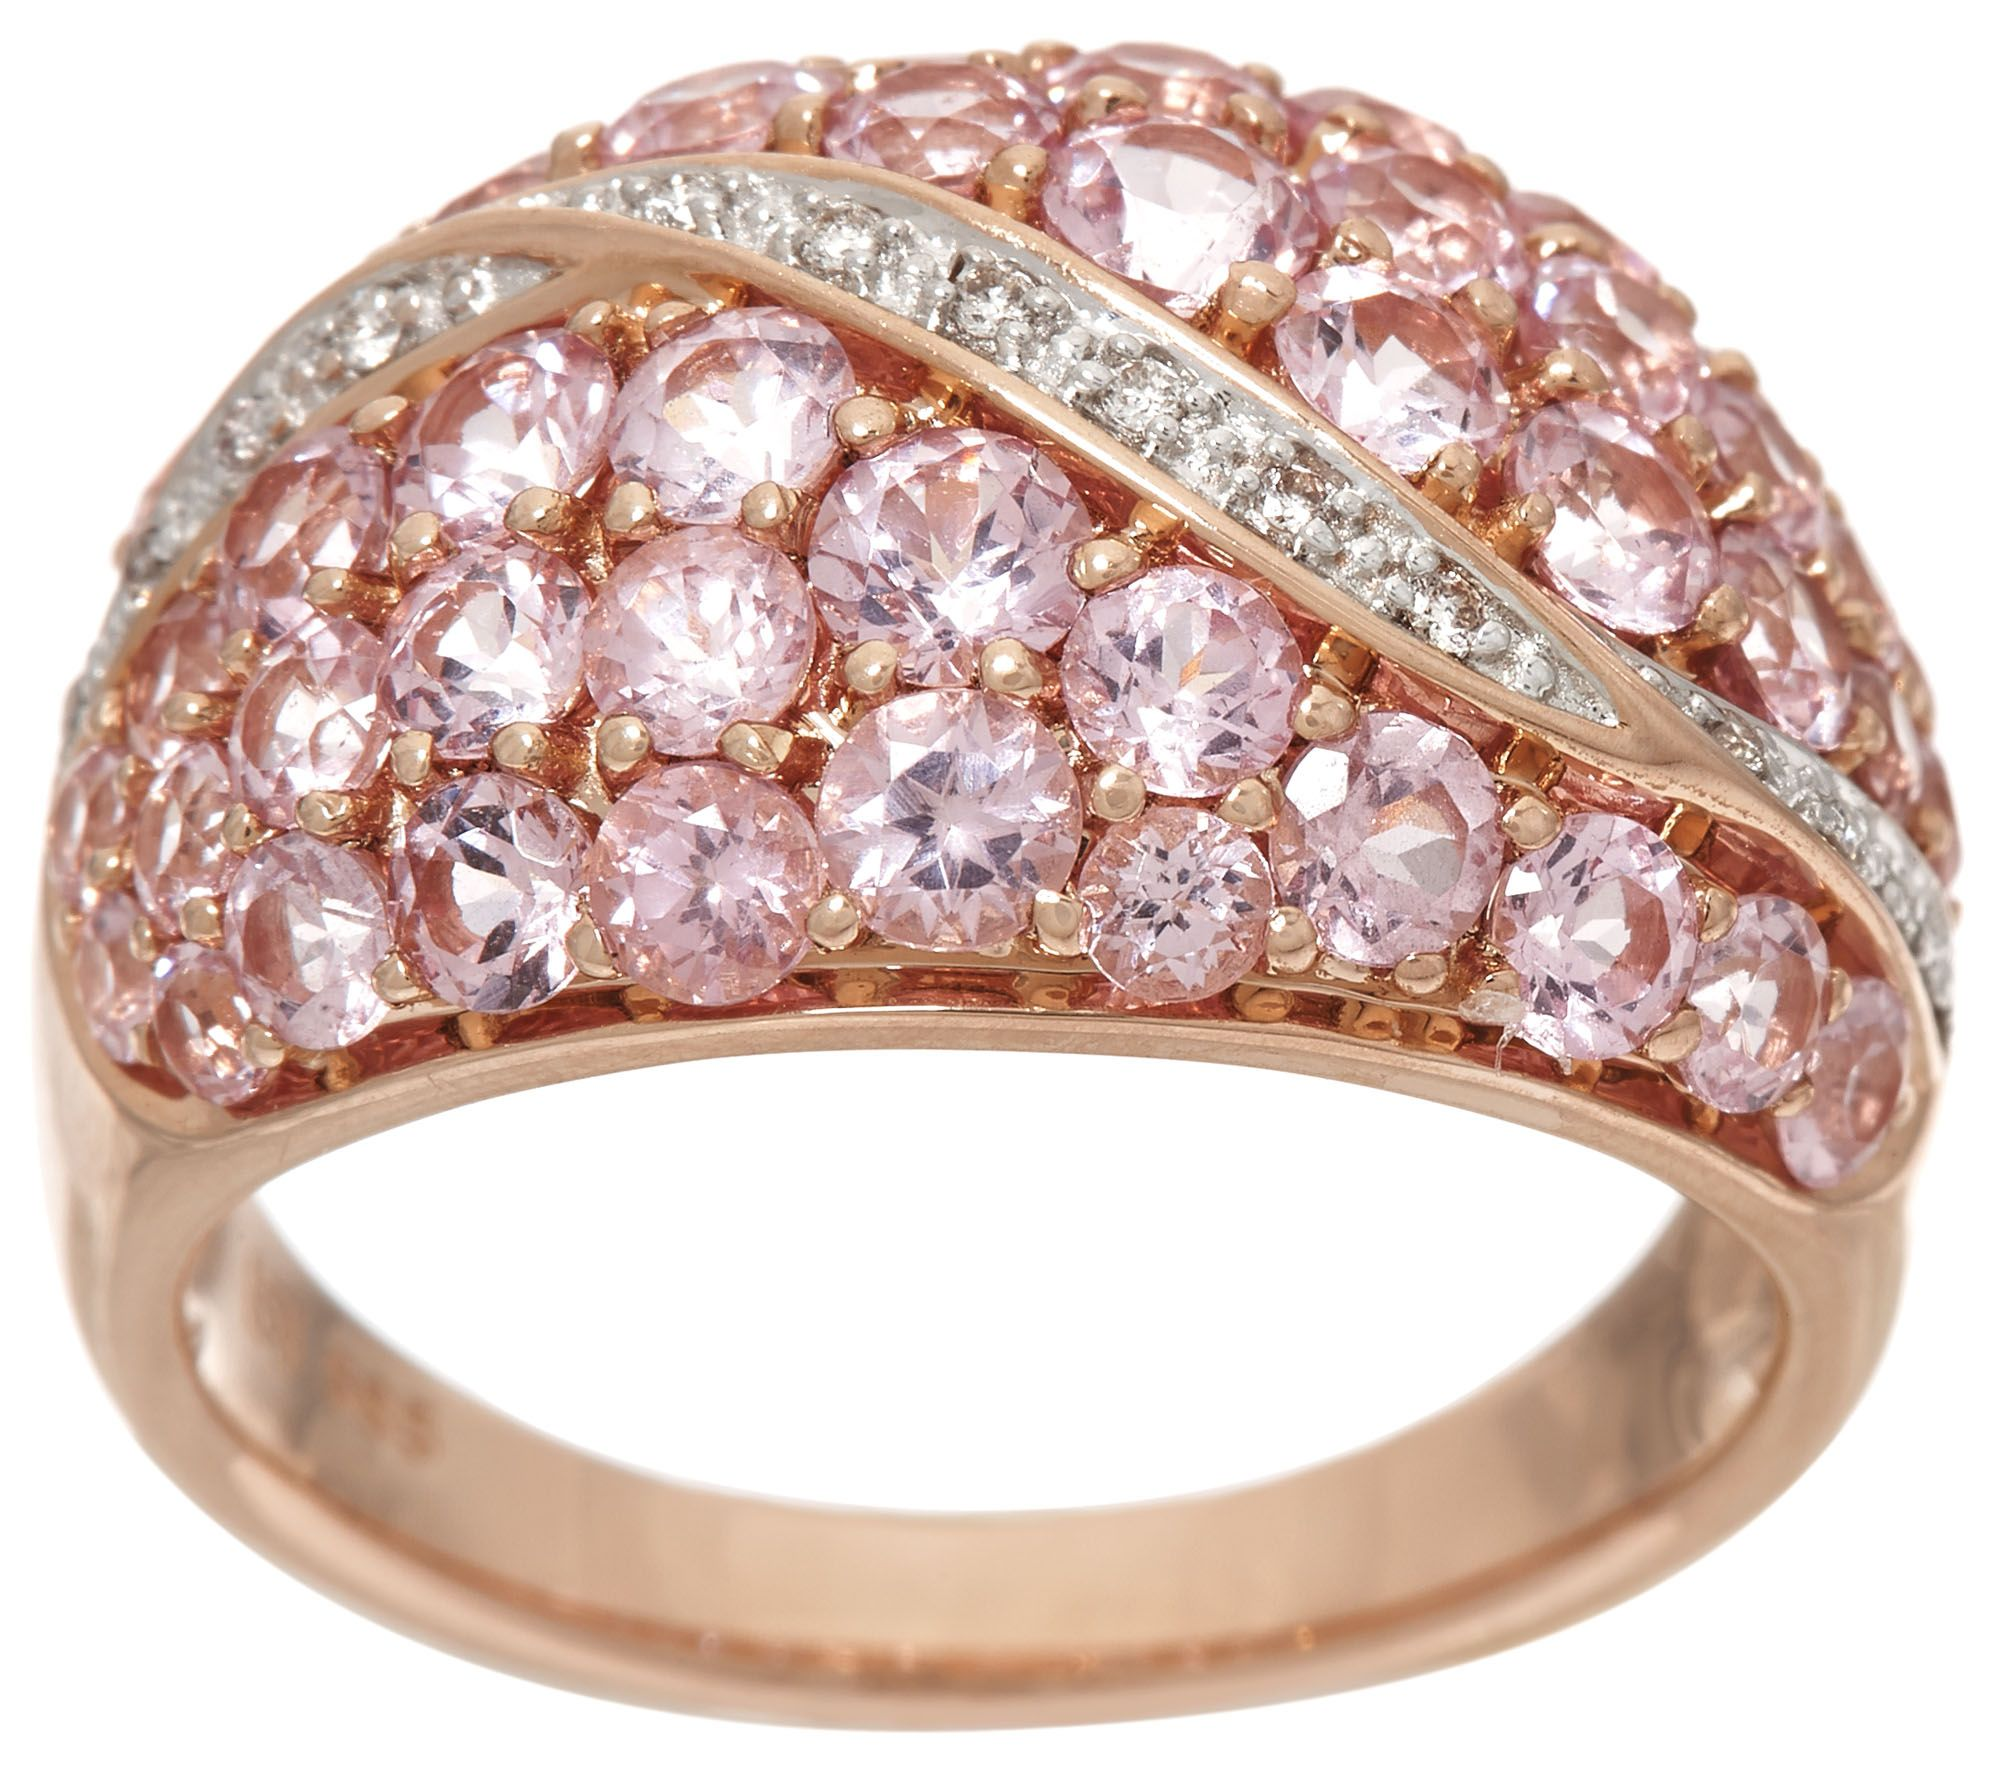 Shps 5/12 Pink Spinel & Diamond Wide Band Ring, 14K, 2.00 cttw